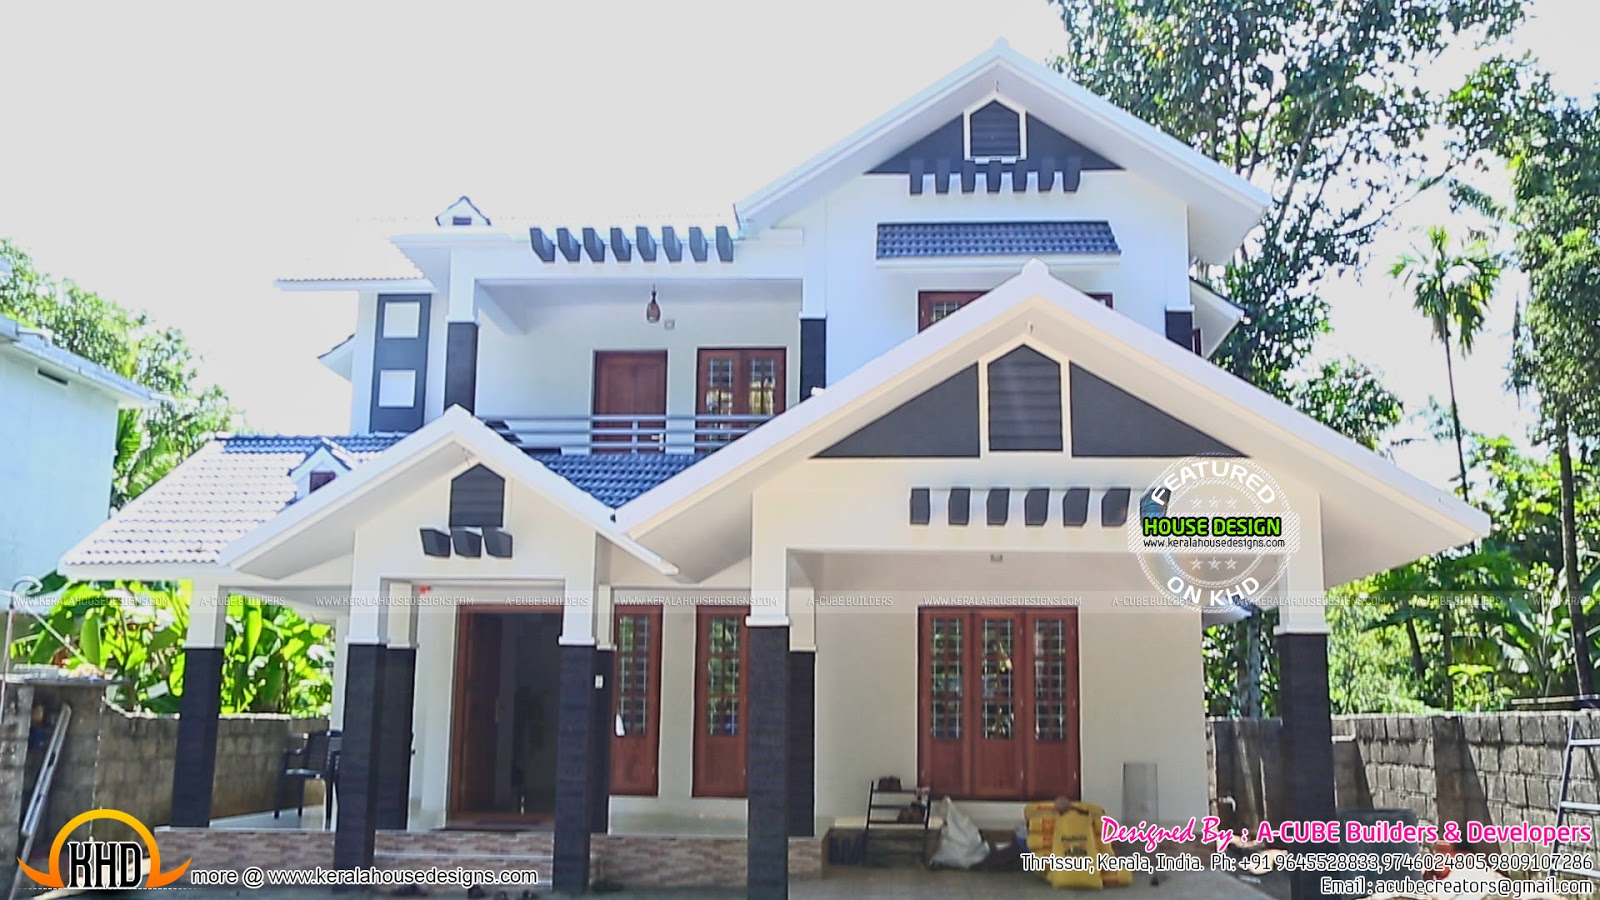 new house plans for 2016 starts here kerala home design carriage house plans new home plans